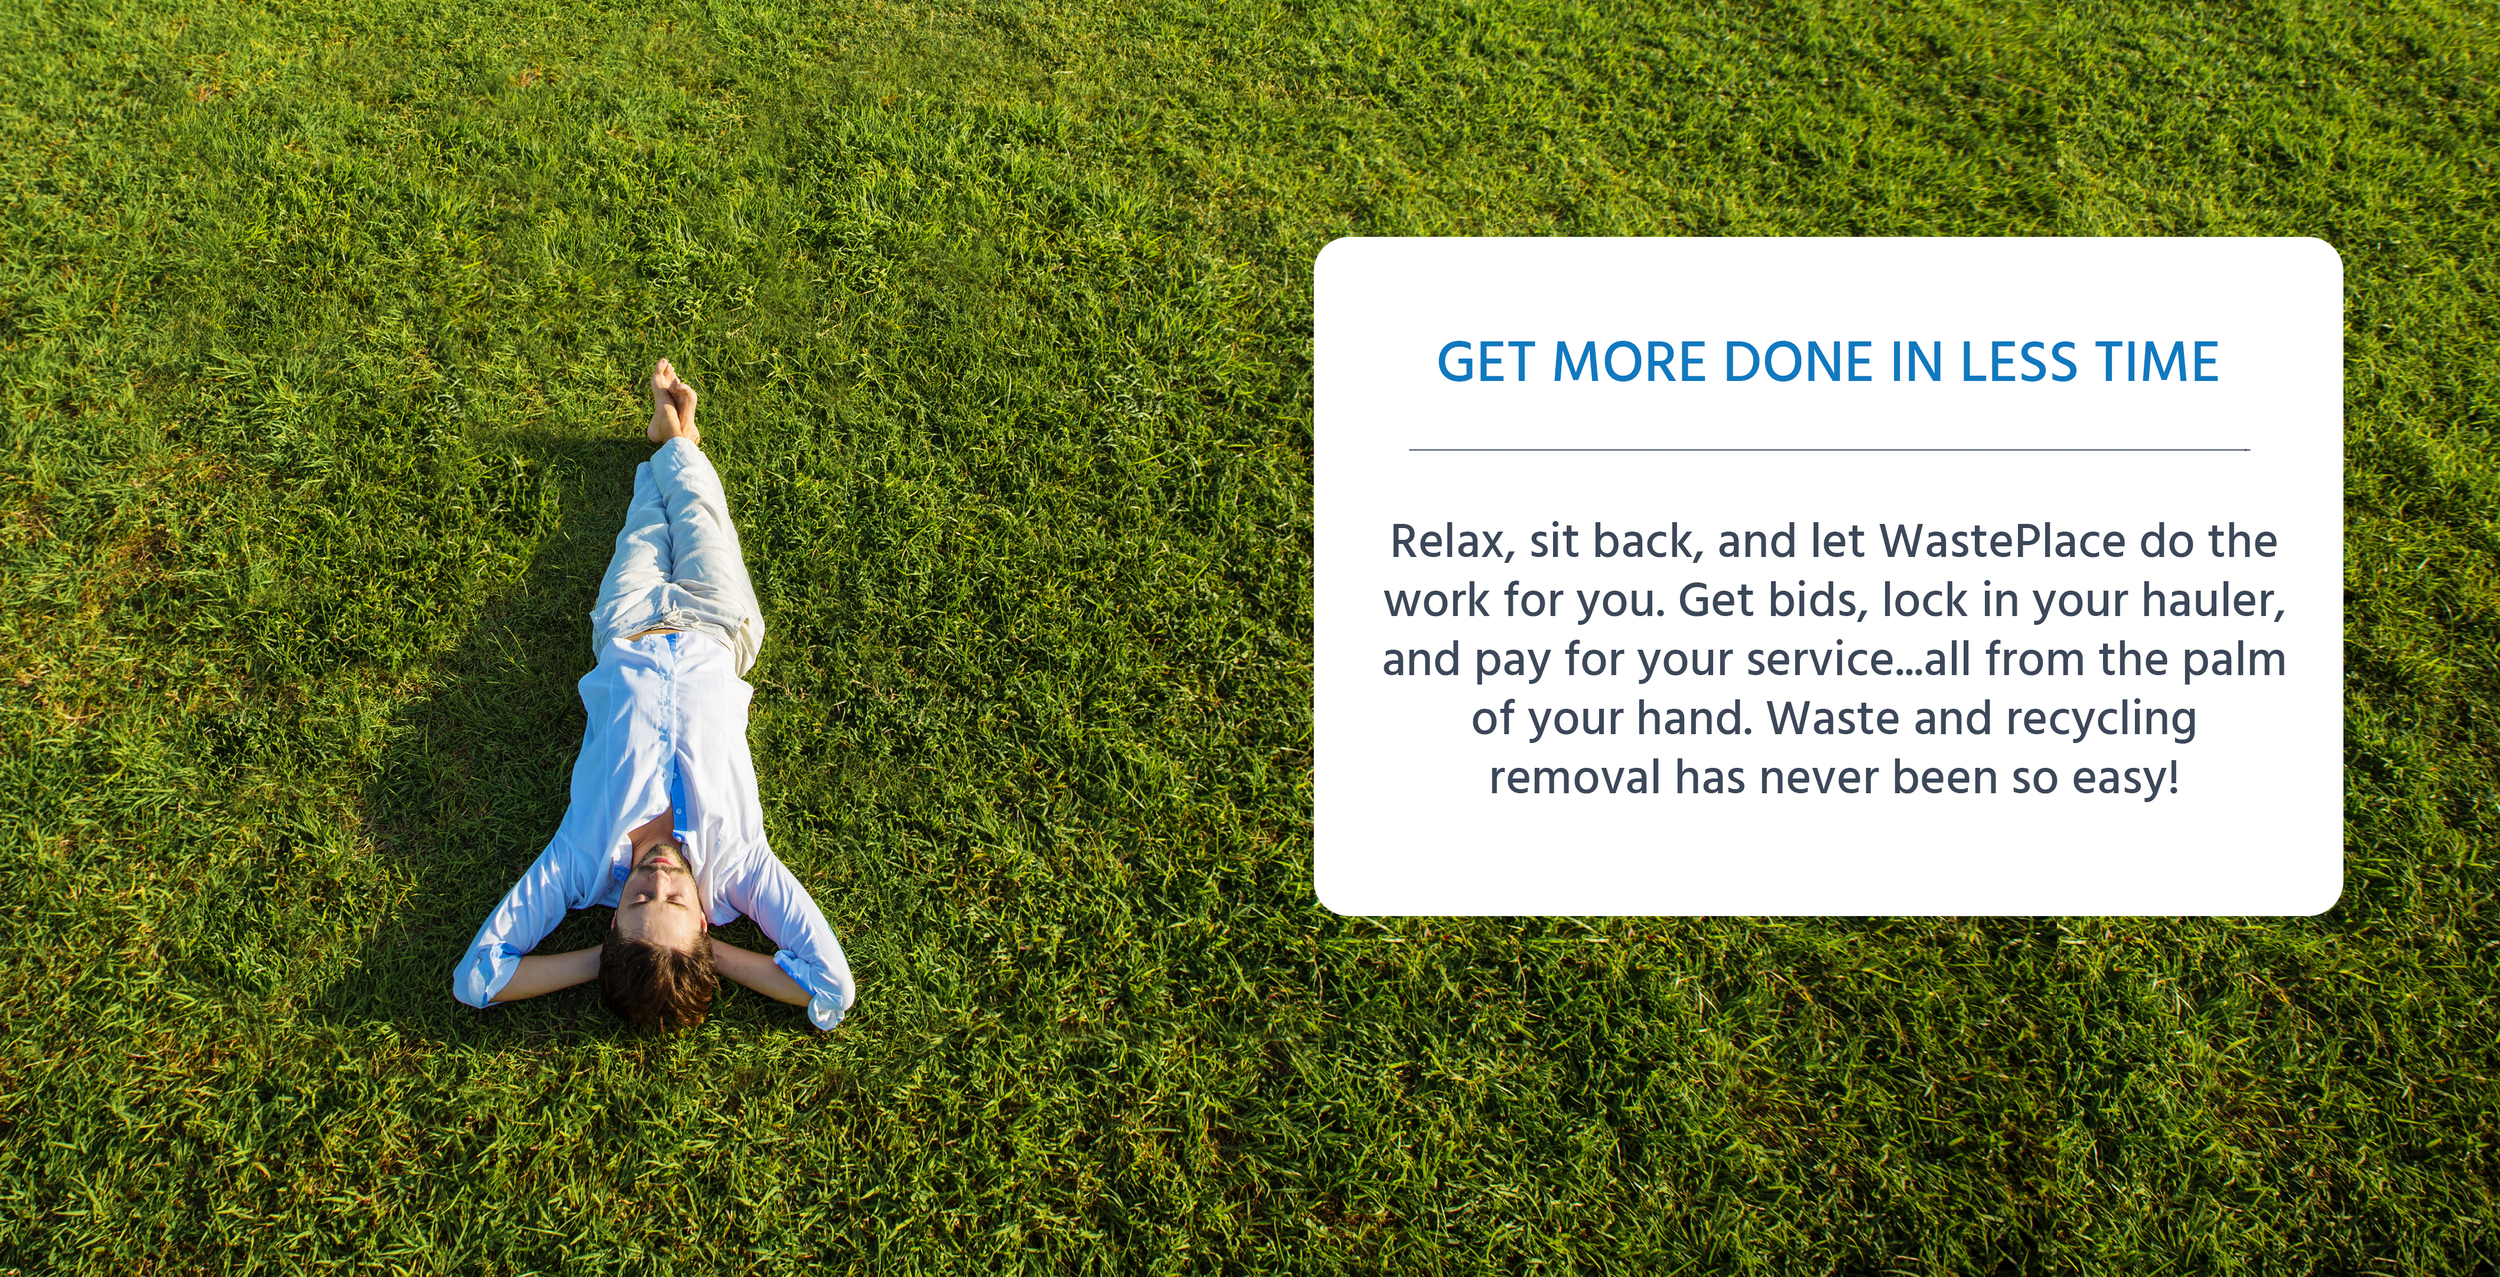 save time using wasteplace for junk removal, dumpster rentals and waste and recycling removal